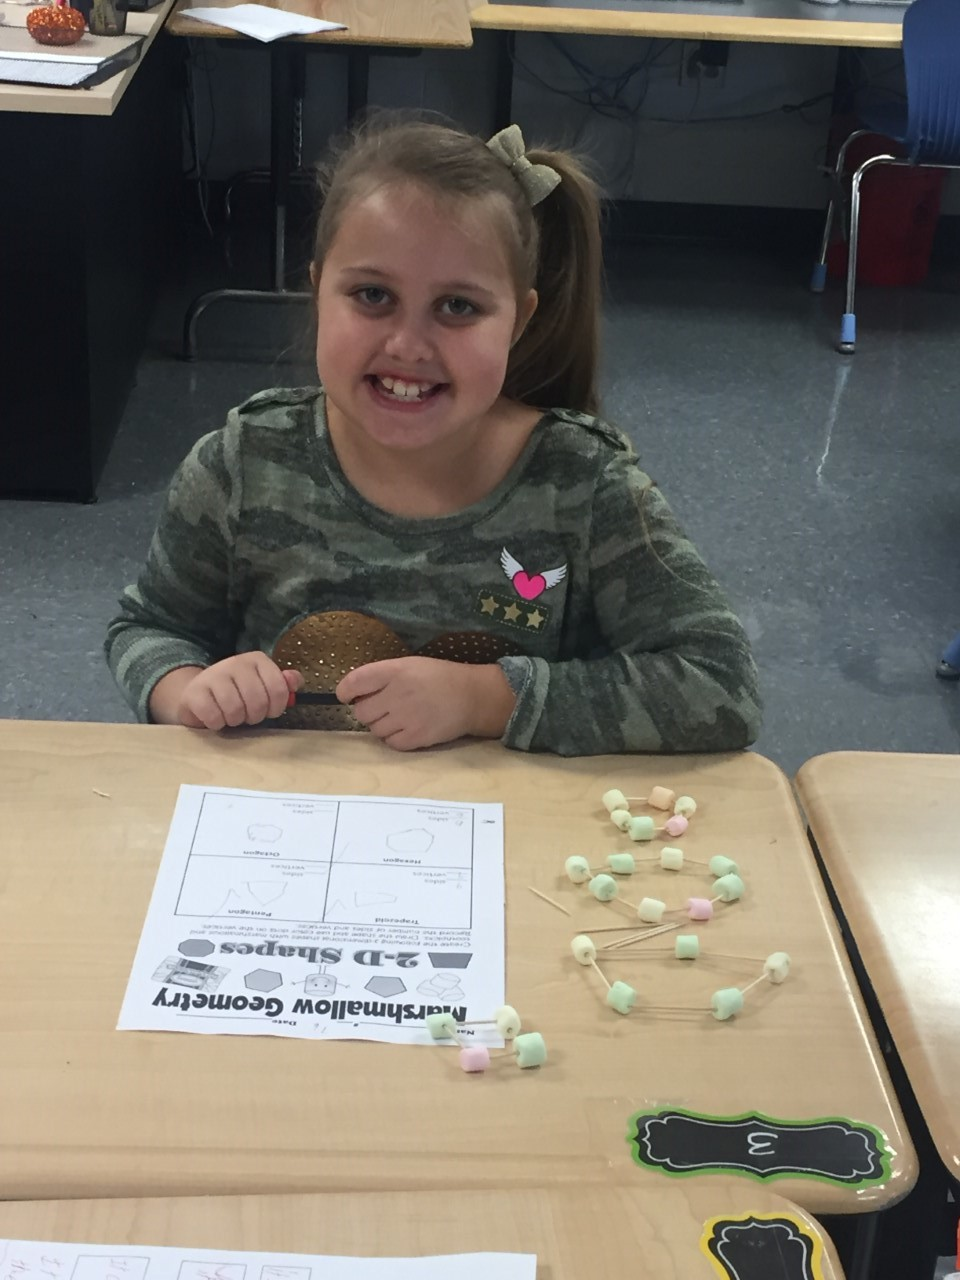 Miller's third grade at North Magoffin Elementary created 2-deminisional geometric shapes using marshmallows and toothpicks